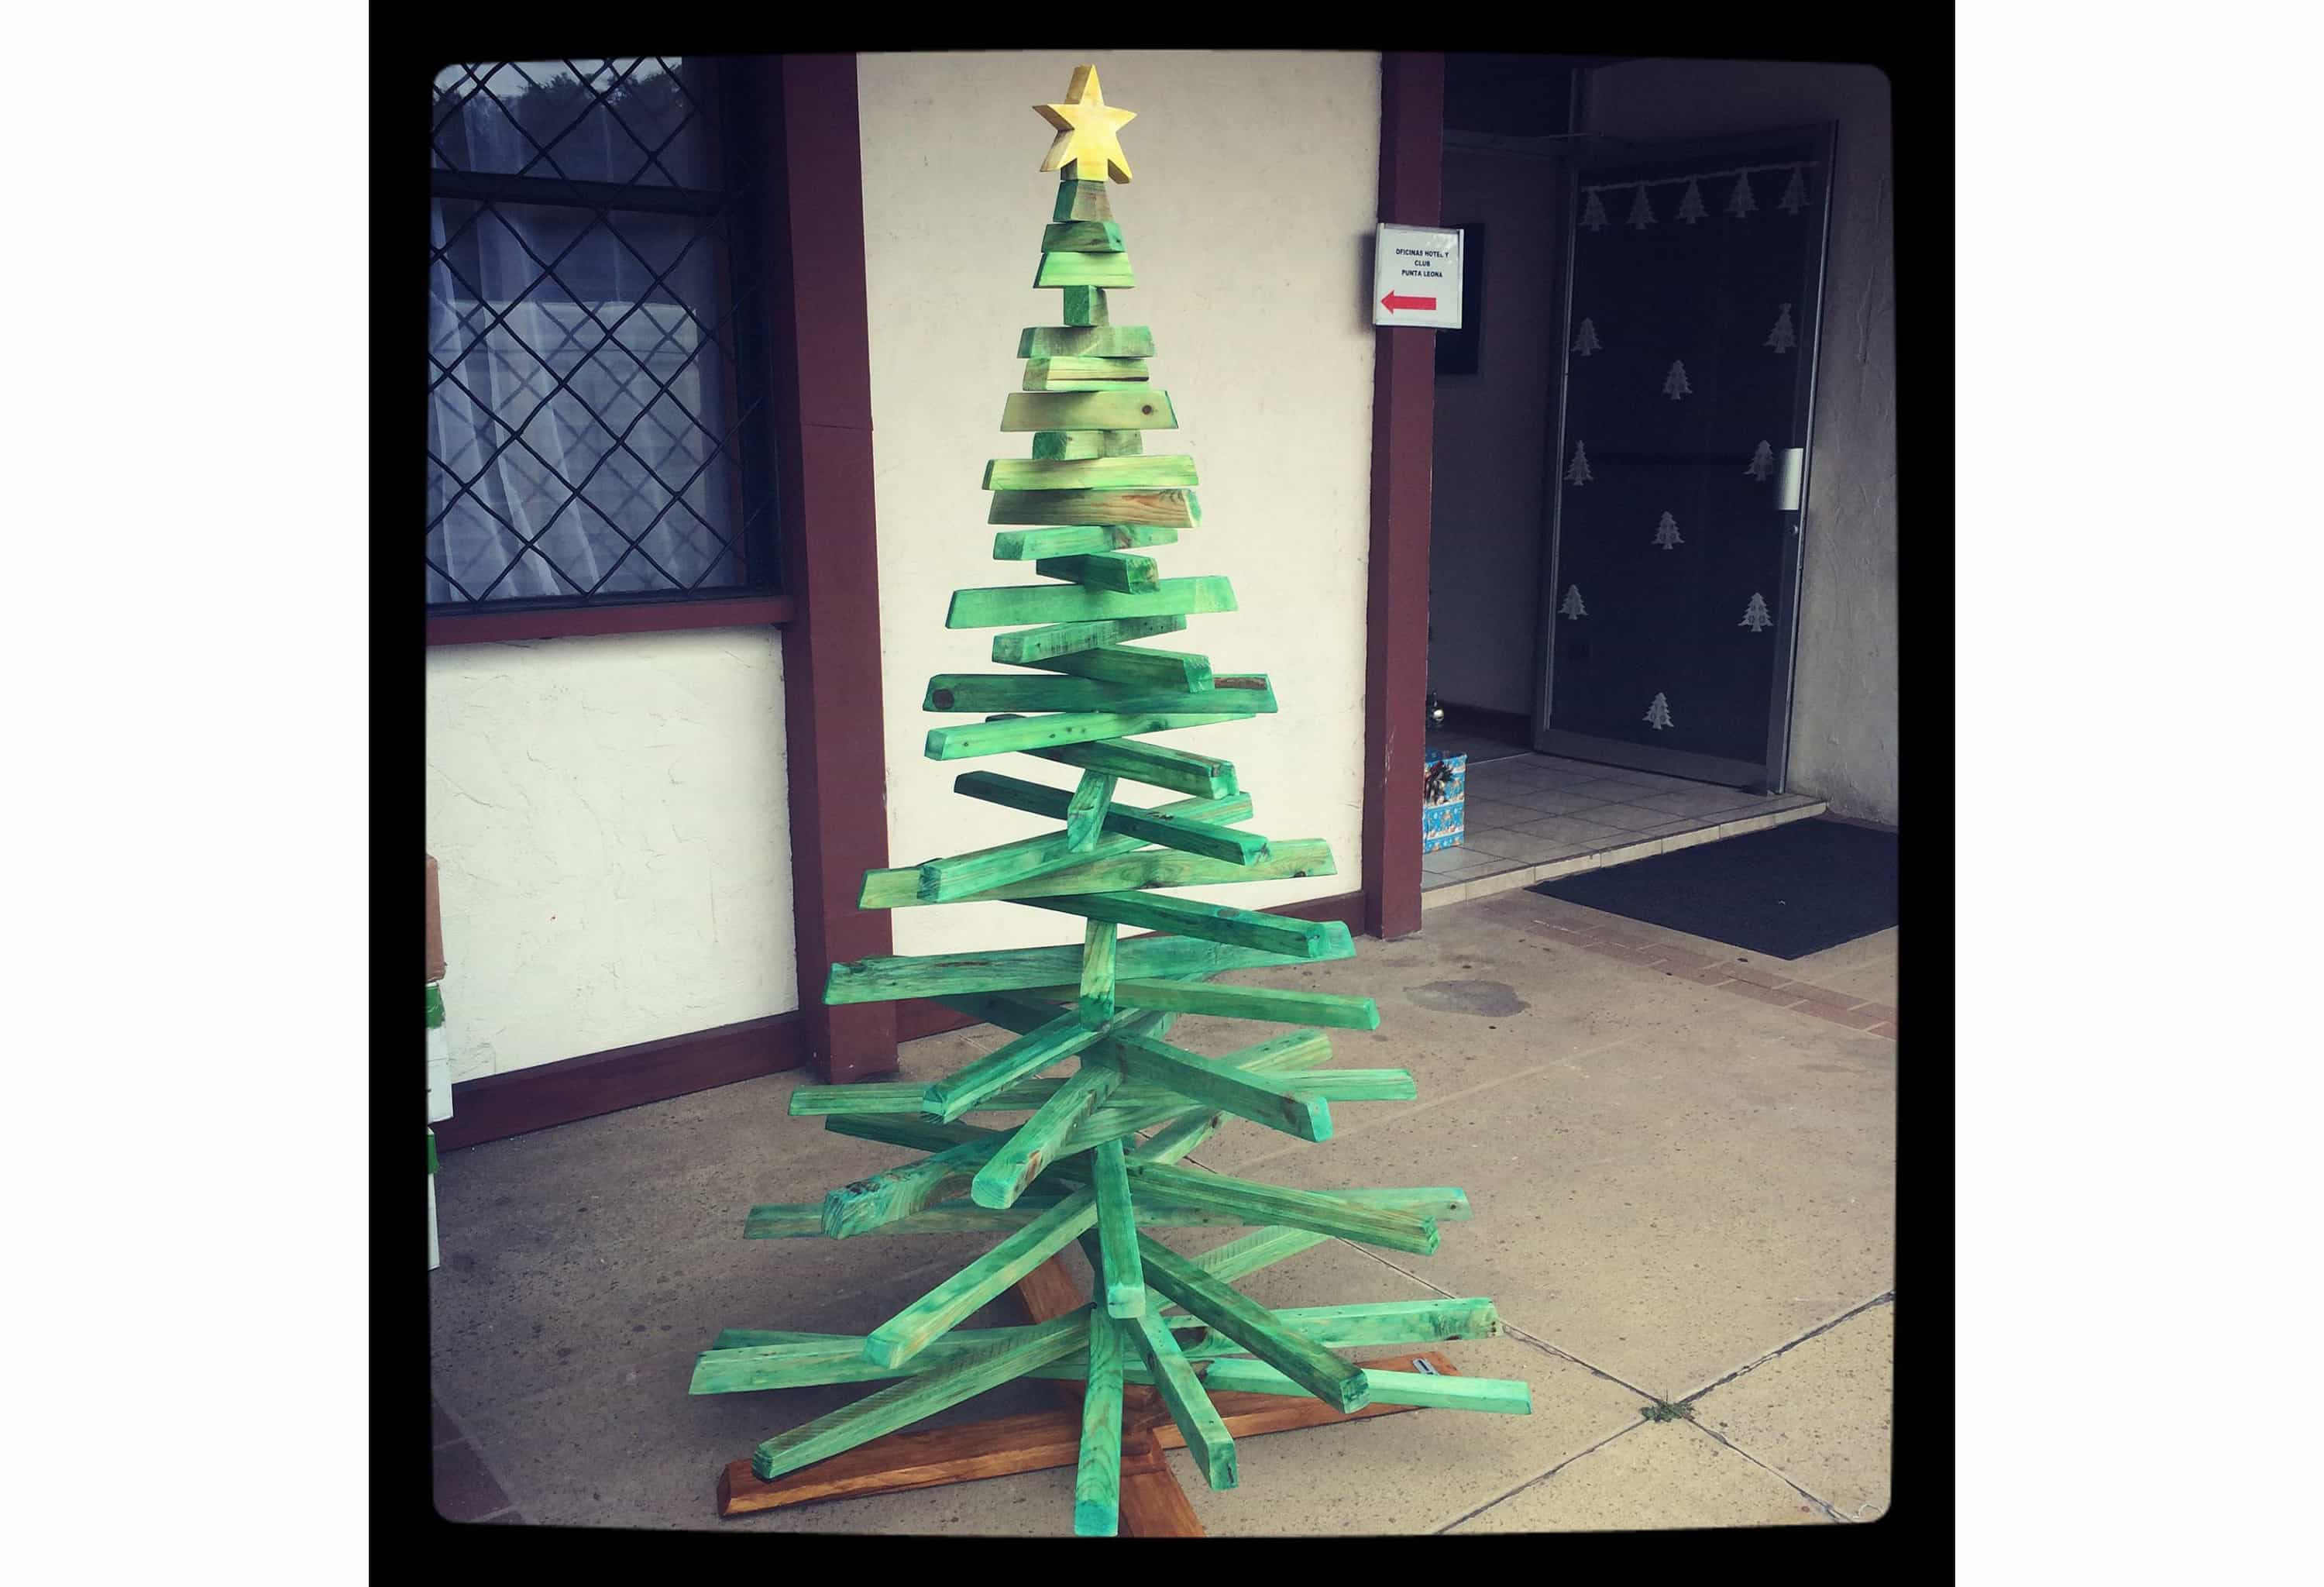 Finding A Green Costa Rican Christmas Tree